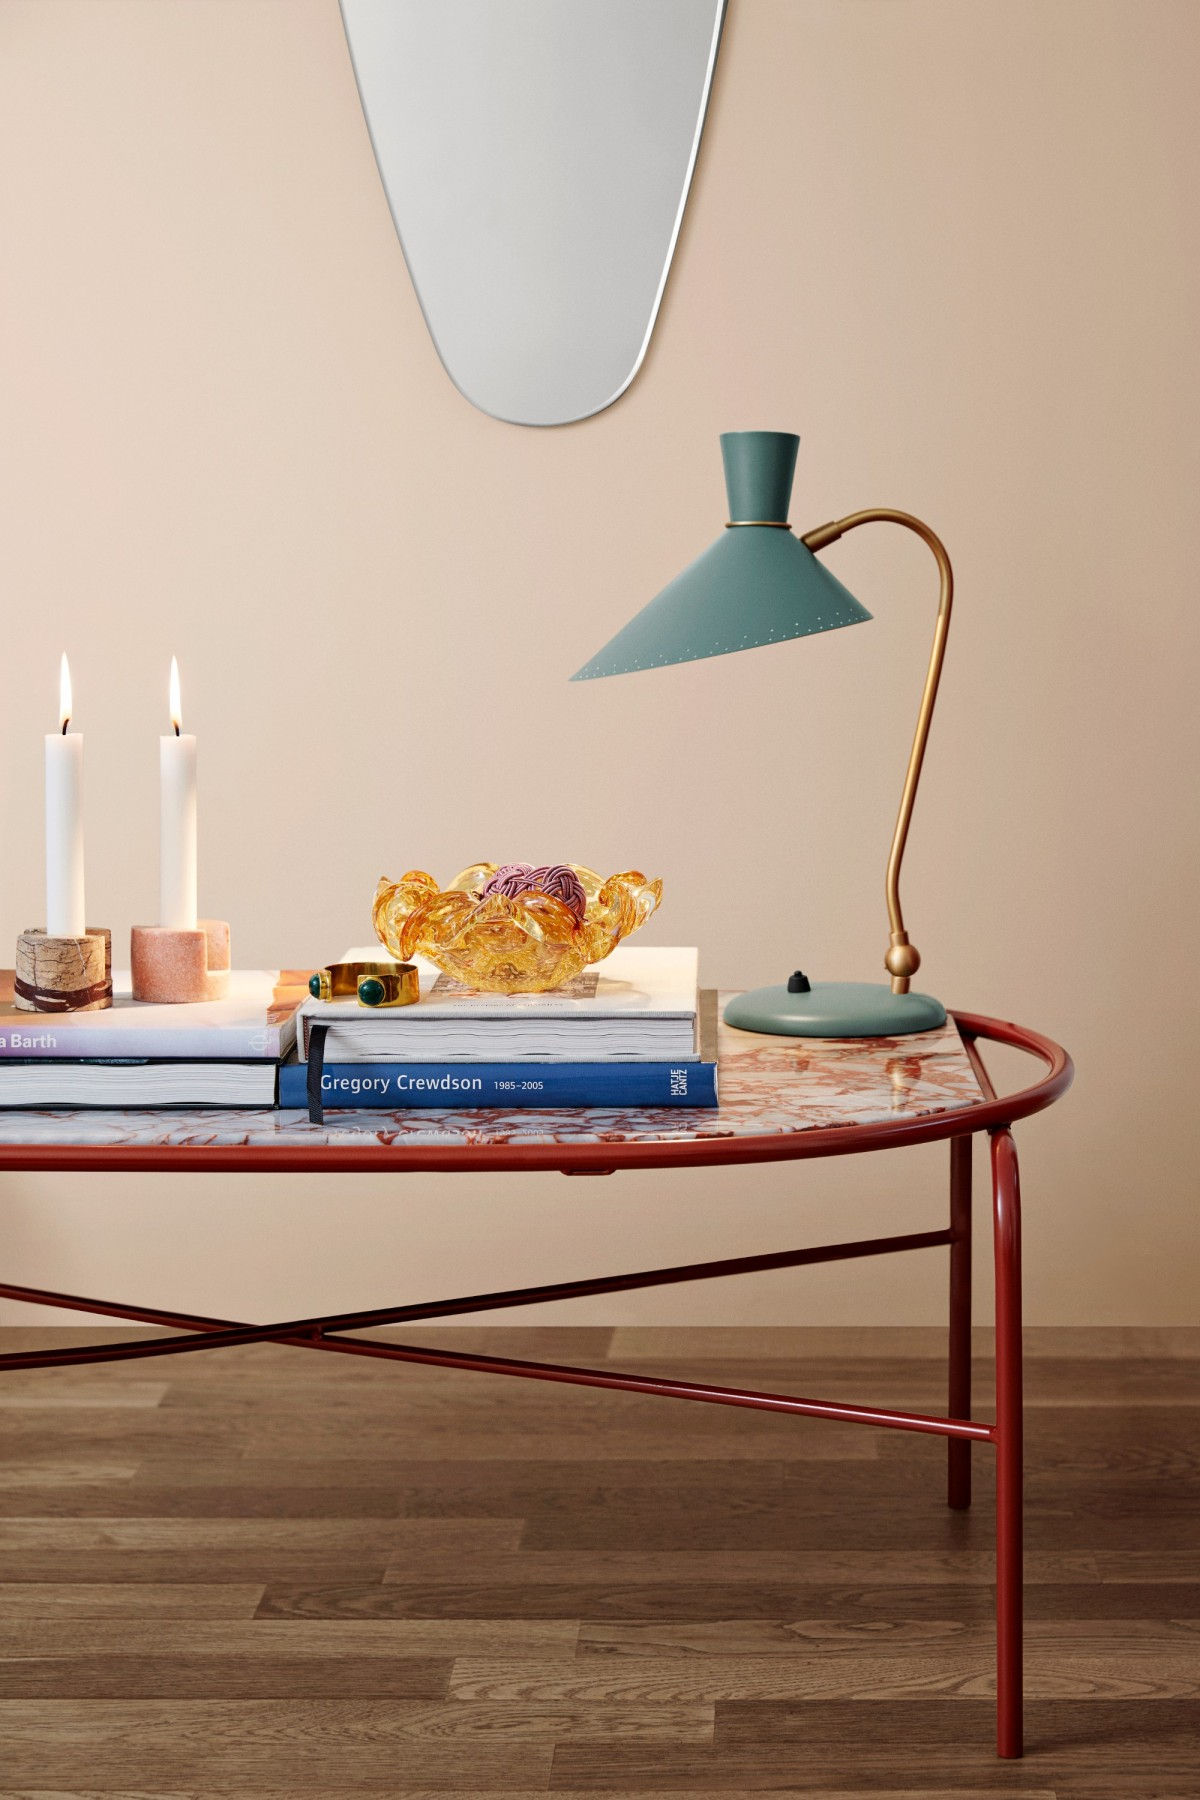 Svend Aage Holm-Sørensen 'Bloom' Table Lamp Image Credit: Warm Nordic